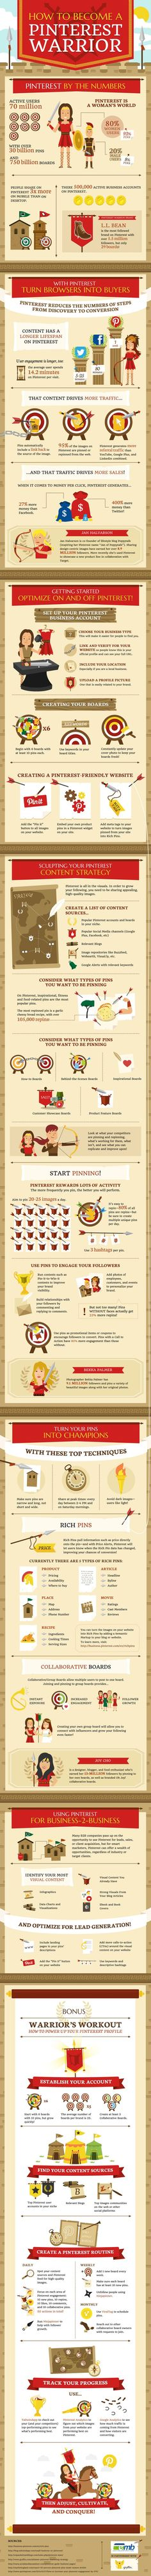 How to become Pinterest Warrior. #infographic #PinterestStatistics